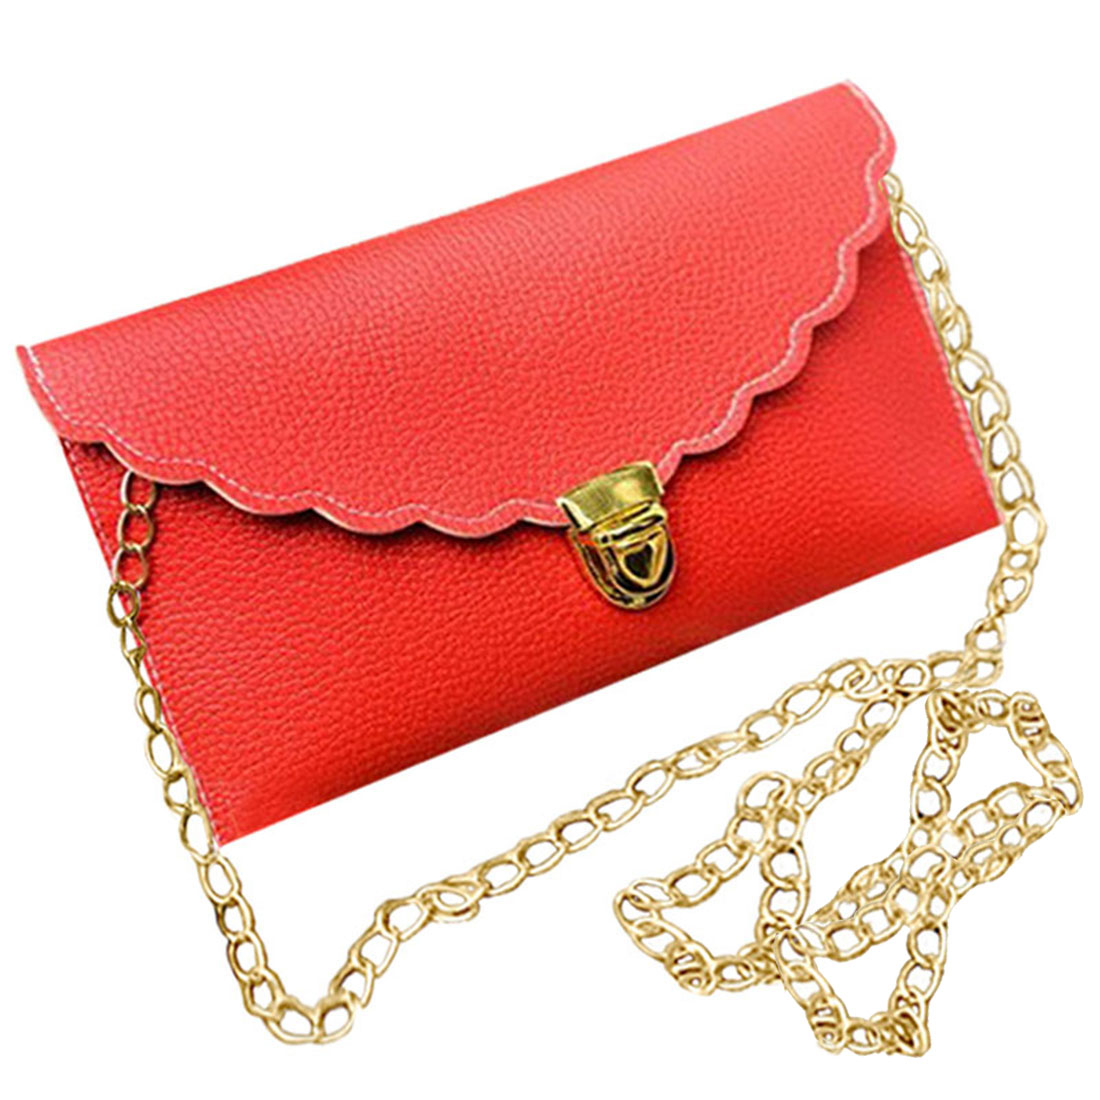 Ladies Handbag Imitation Leather Shoulder Bag Fashion Wallet Long